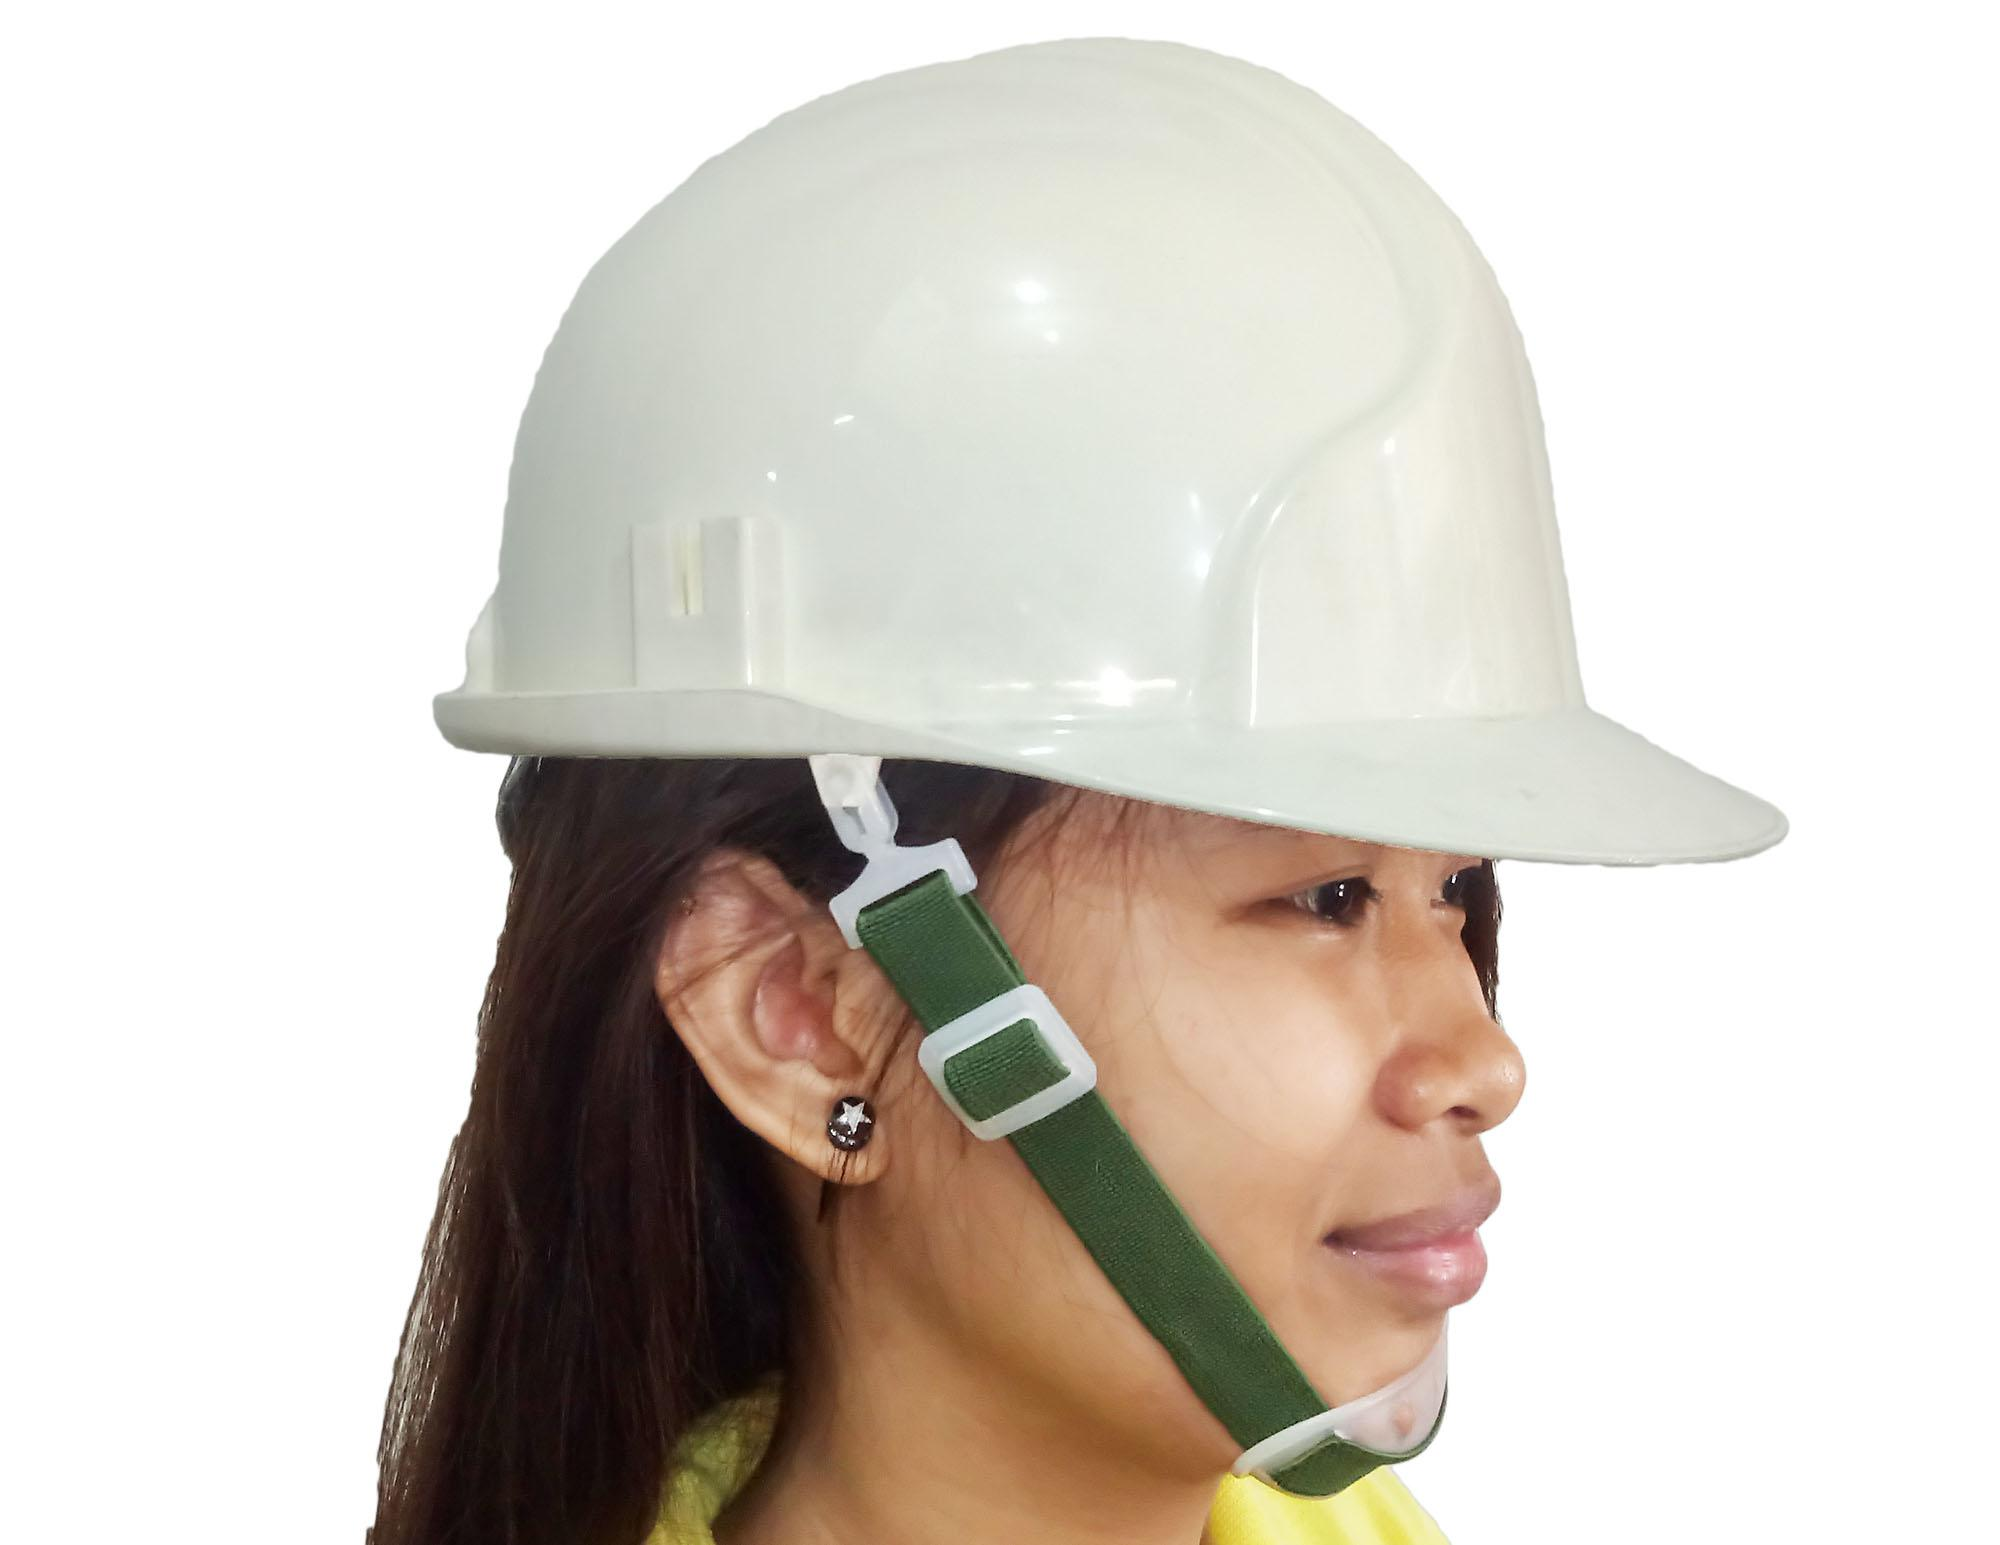 Meisons hard hat safety helmet ABS WHITE ratchet liner and chin strap Philippines